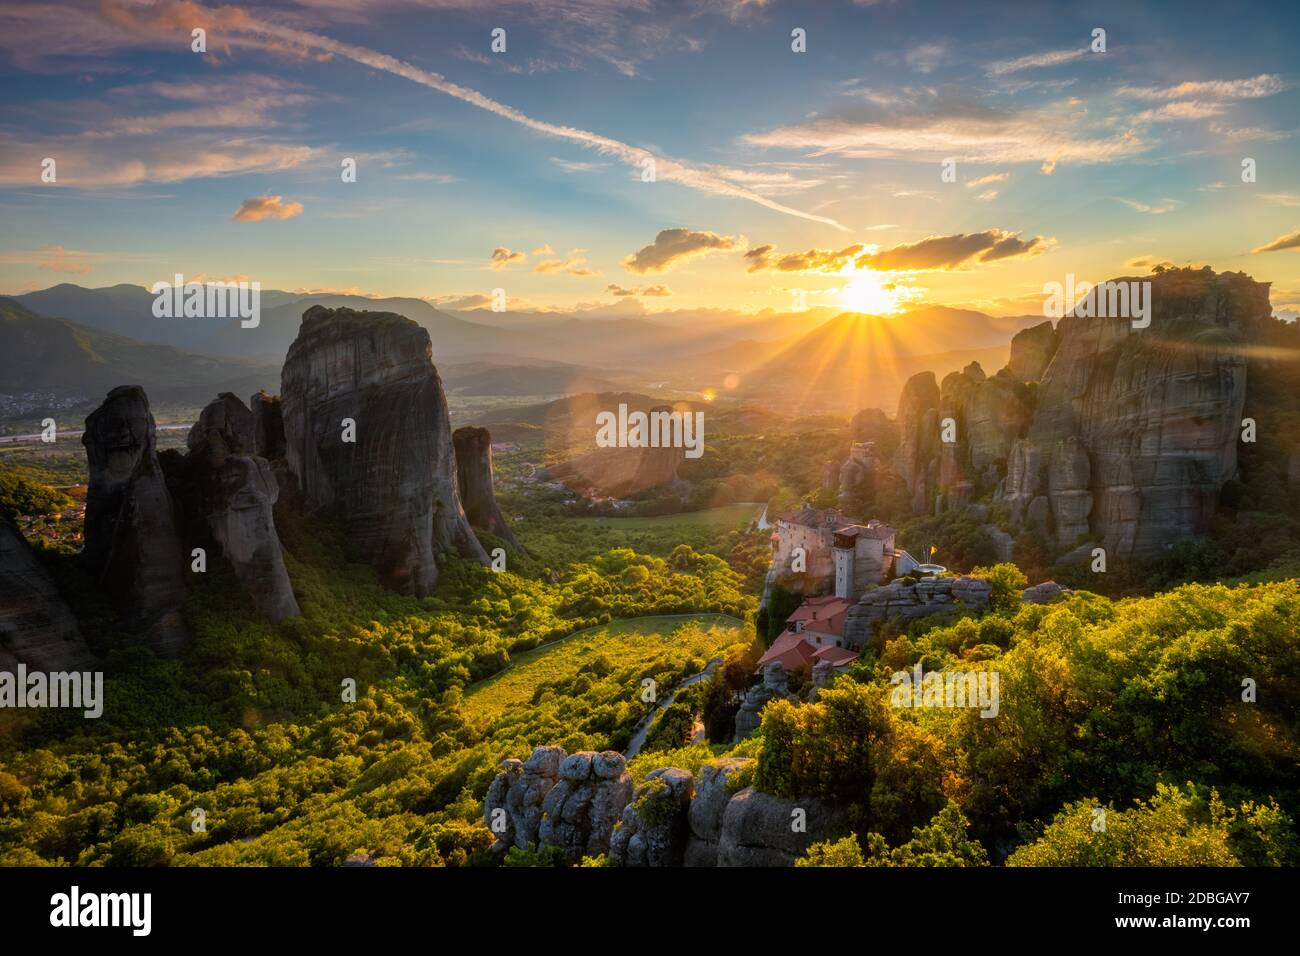 Sunset over monastery of Rousanou and Monastery of St. Nicholas Anapavsa in famous greek tourist destination Meteora in Greece on sunset with sun rays Stock Photo